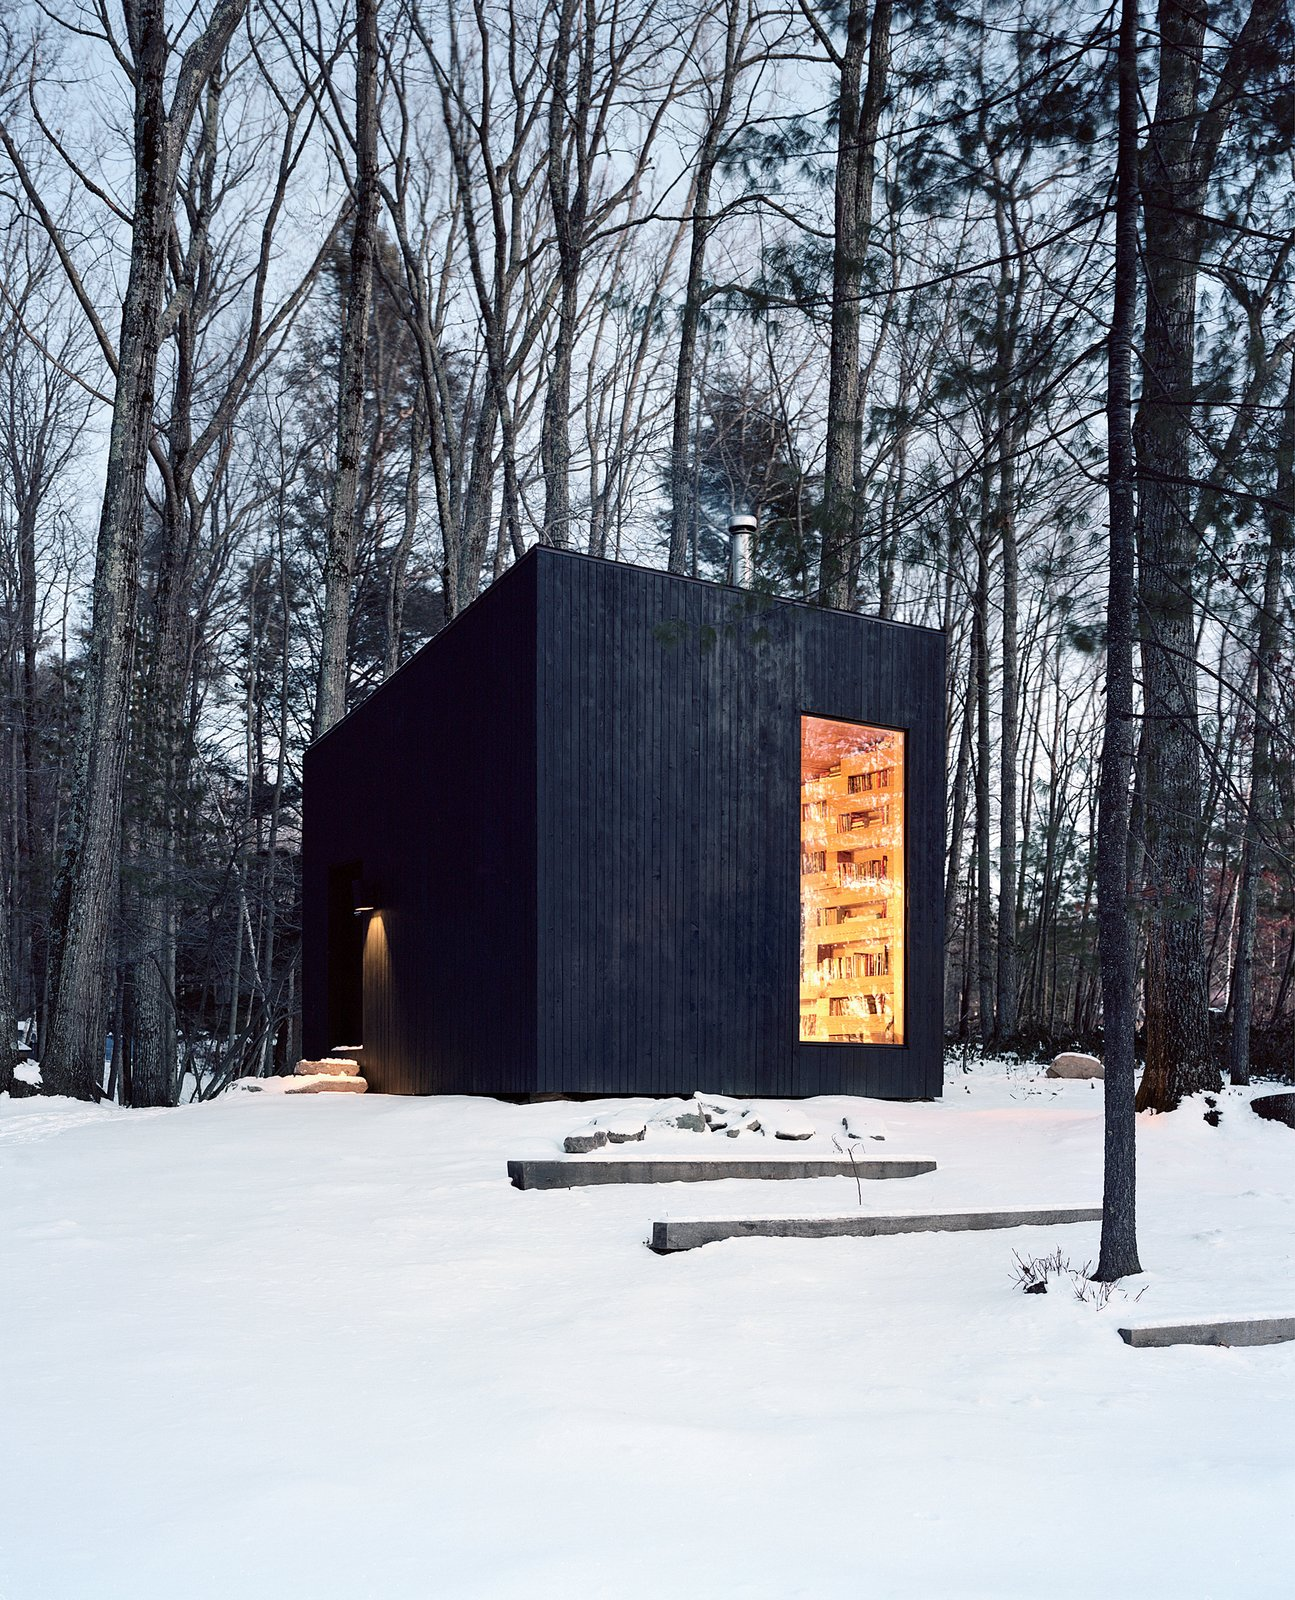 Jason and Suzanne Koxvold commissioned Studio Padron to design a 200-square-foot guesthouse on their Ellenville, New York, property. The geometric structure's dark cedar cladding contrasts with the inviting interior, which is heated by a cast-iron Jøtul stove. A layer of built-in bookshelves made from felled oak lumber also helps insulate the building in winter.